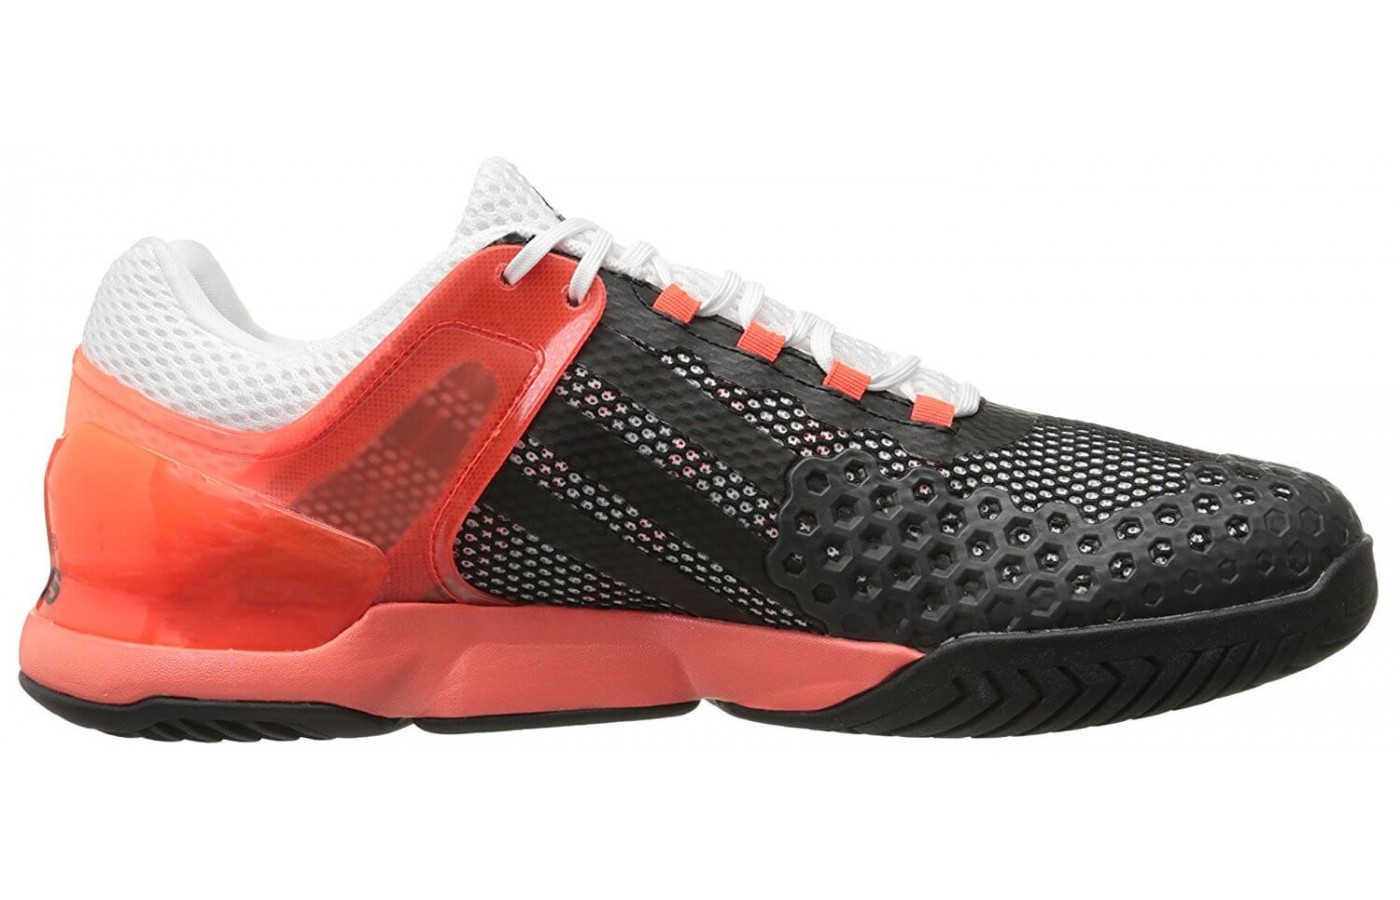 A piece of brightly colored plastic serves as a heel cradle and midfoot cage for the Adidas Adizero Ubersonic.